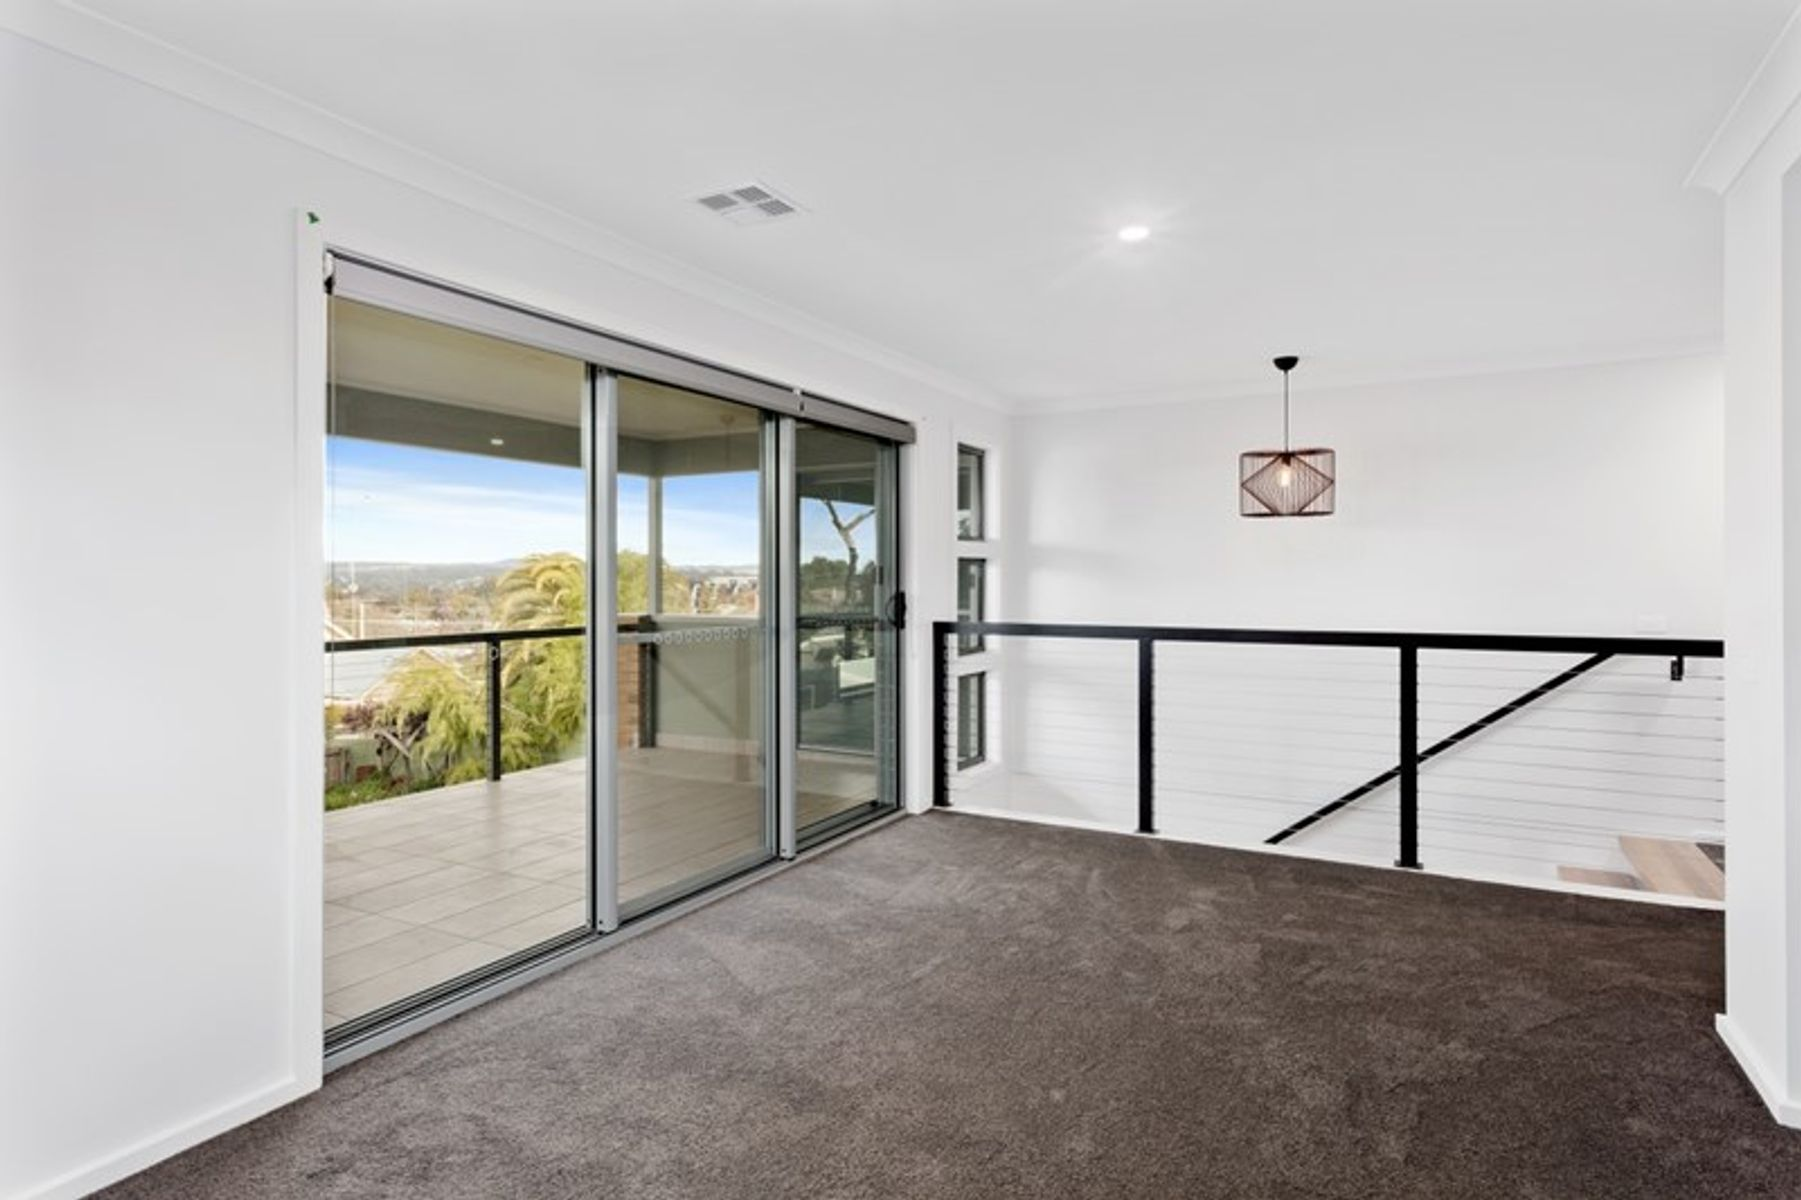 2/60A Honeysuckle Street, Ironbark, VIC 3550